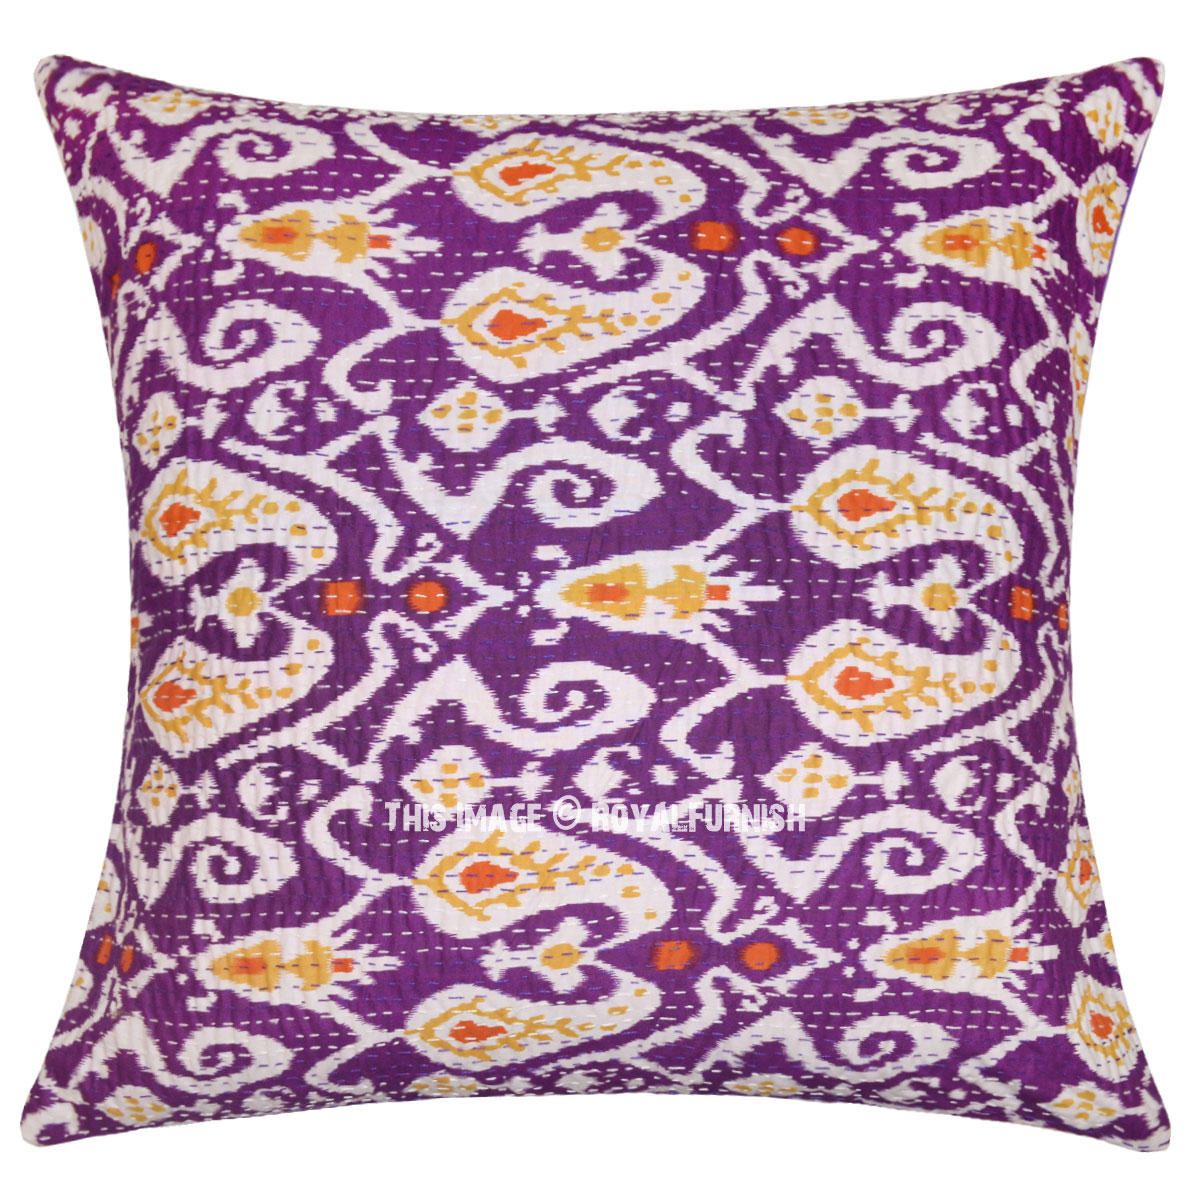 Throw Me A Pillow Coupon Code : Large Purple Decorative Paisley Pattern Cotton Throw Pillow Cushion Cover - RoyalFurnish.com